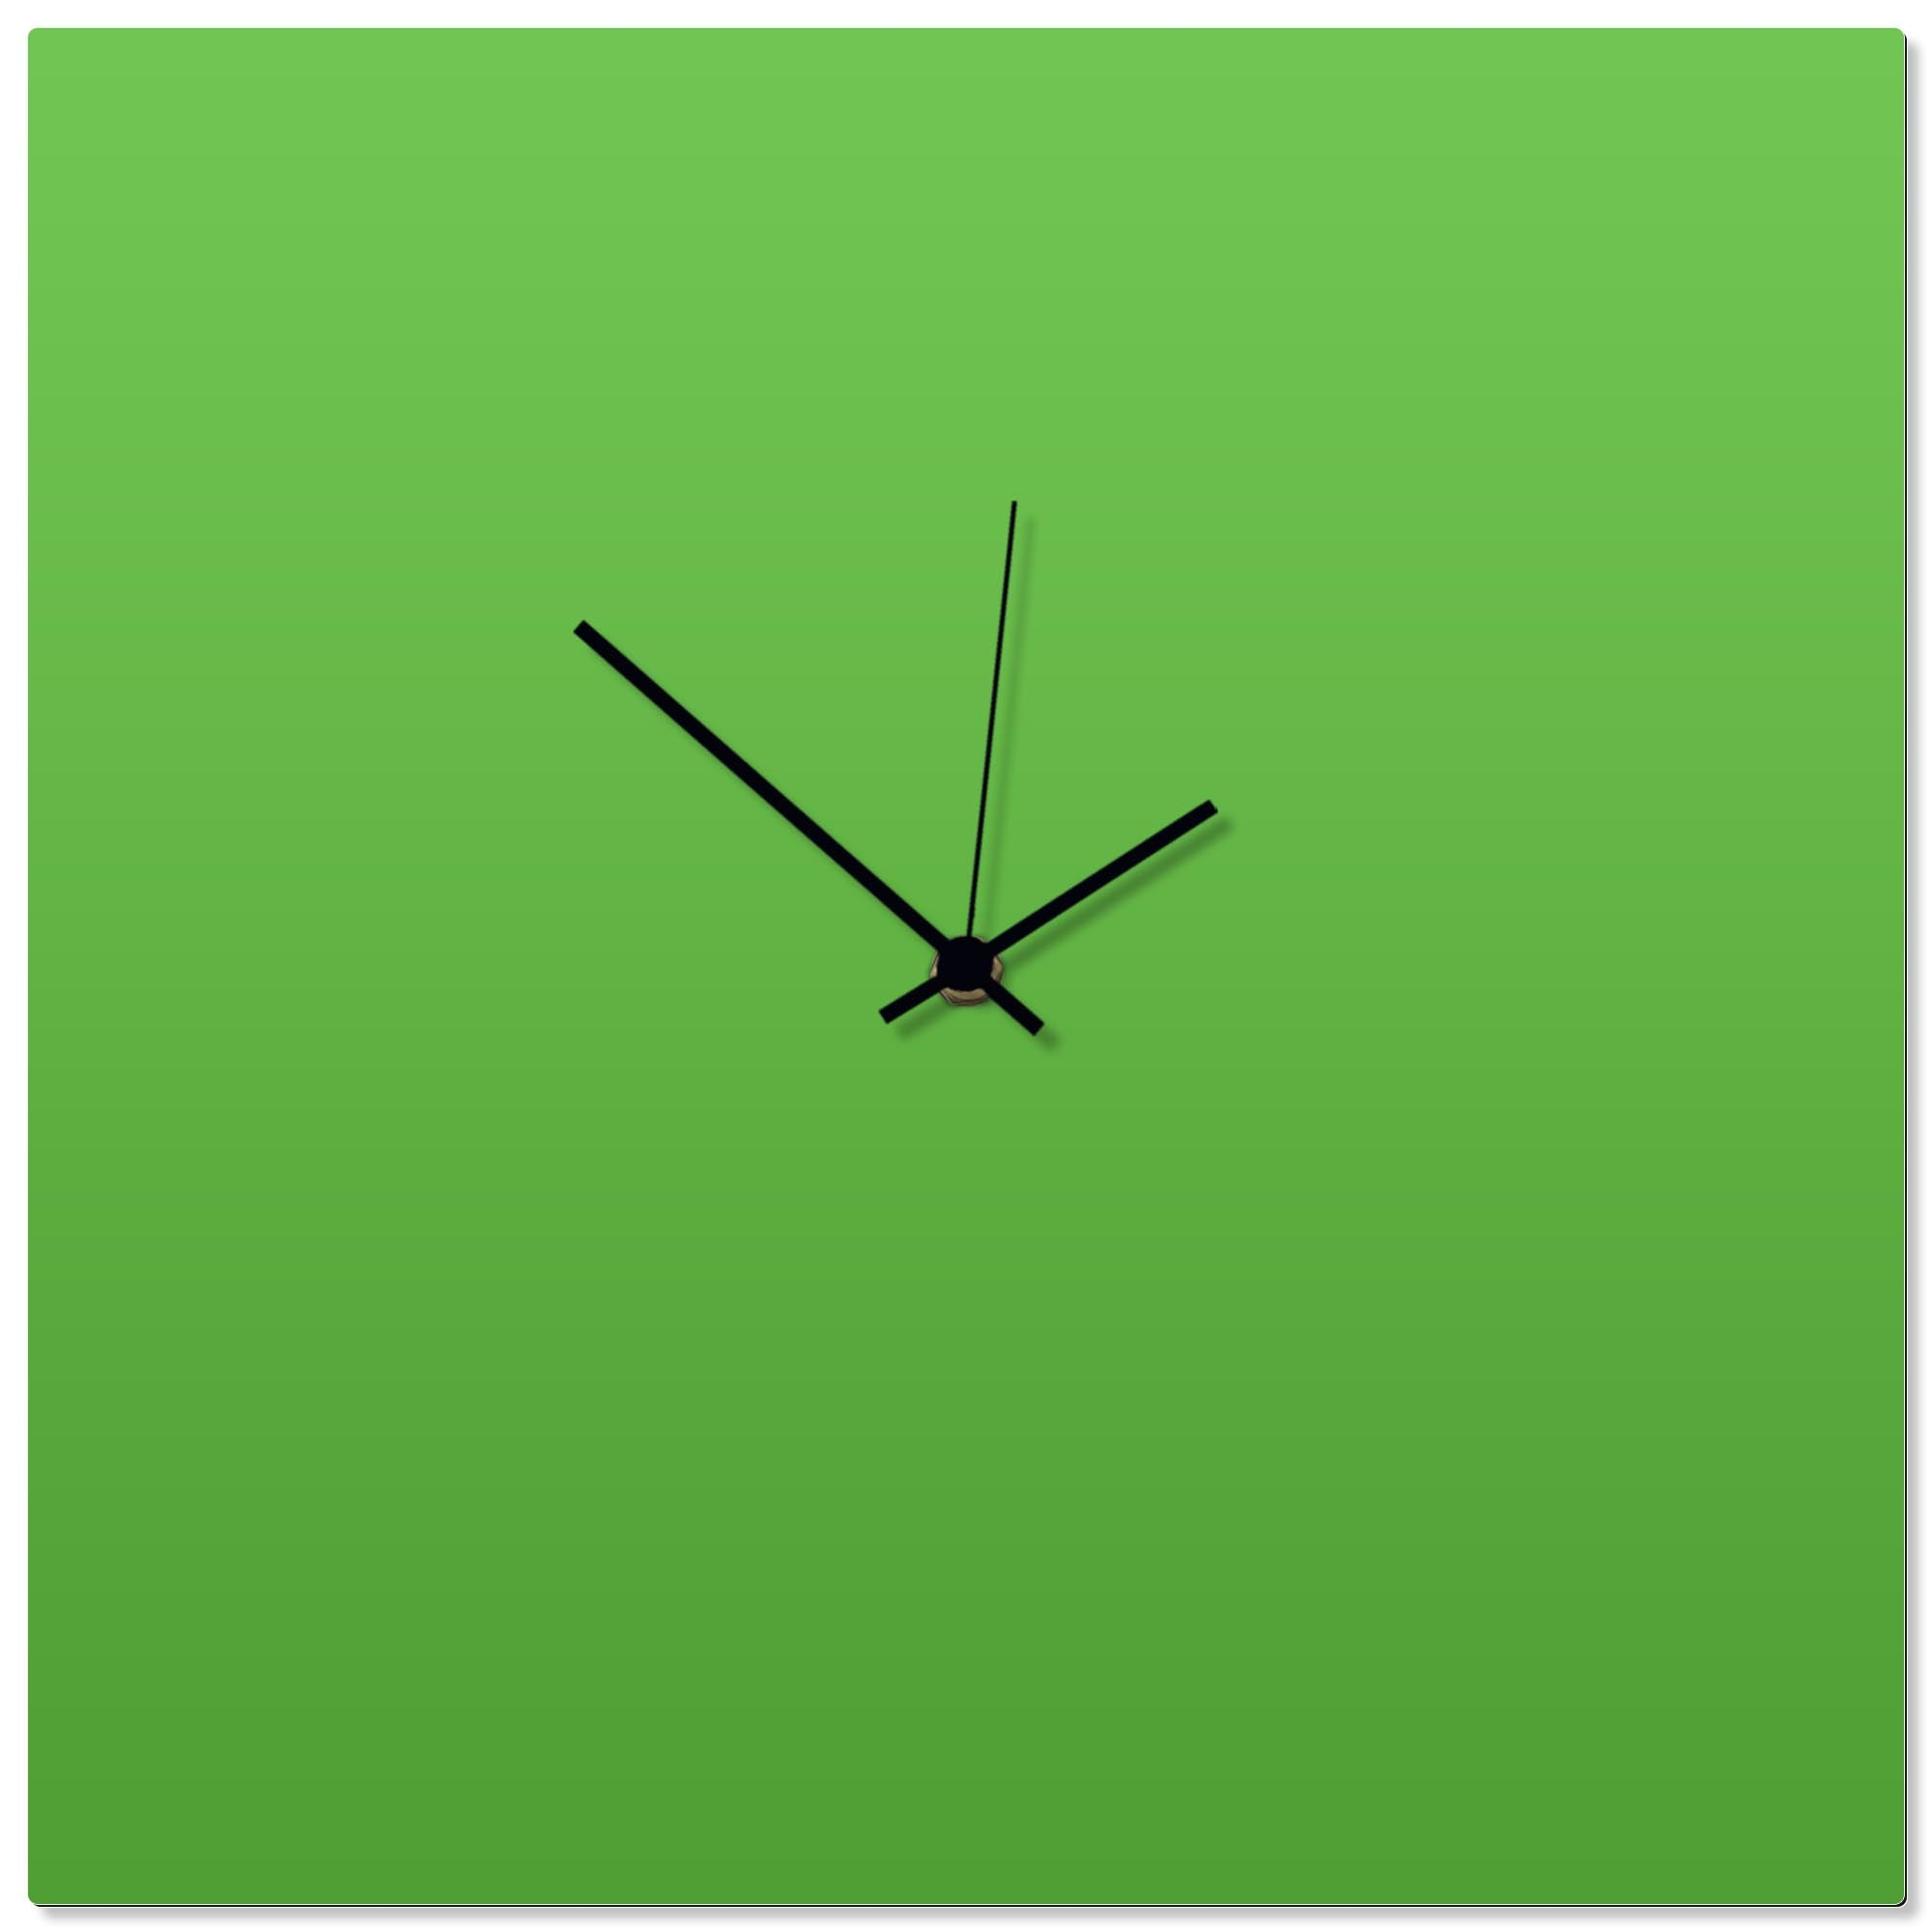 Greenout Black Square Clock by Adam Schwoeppe - Contemporary Clock on Aluminum Polymetal